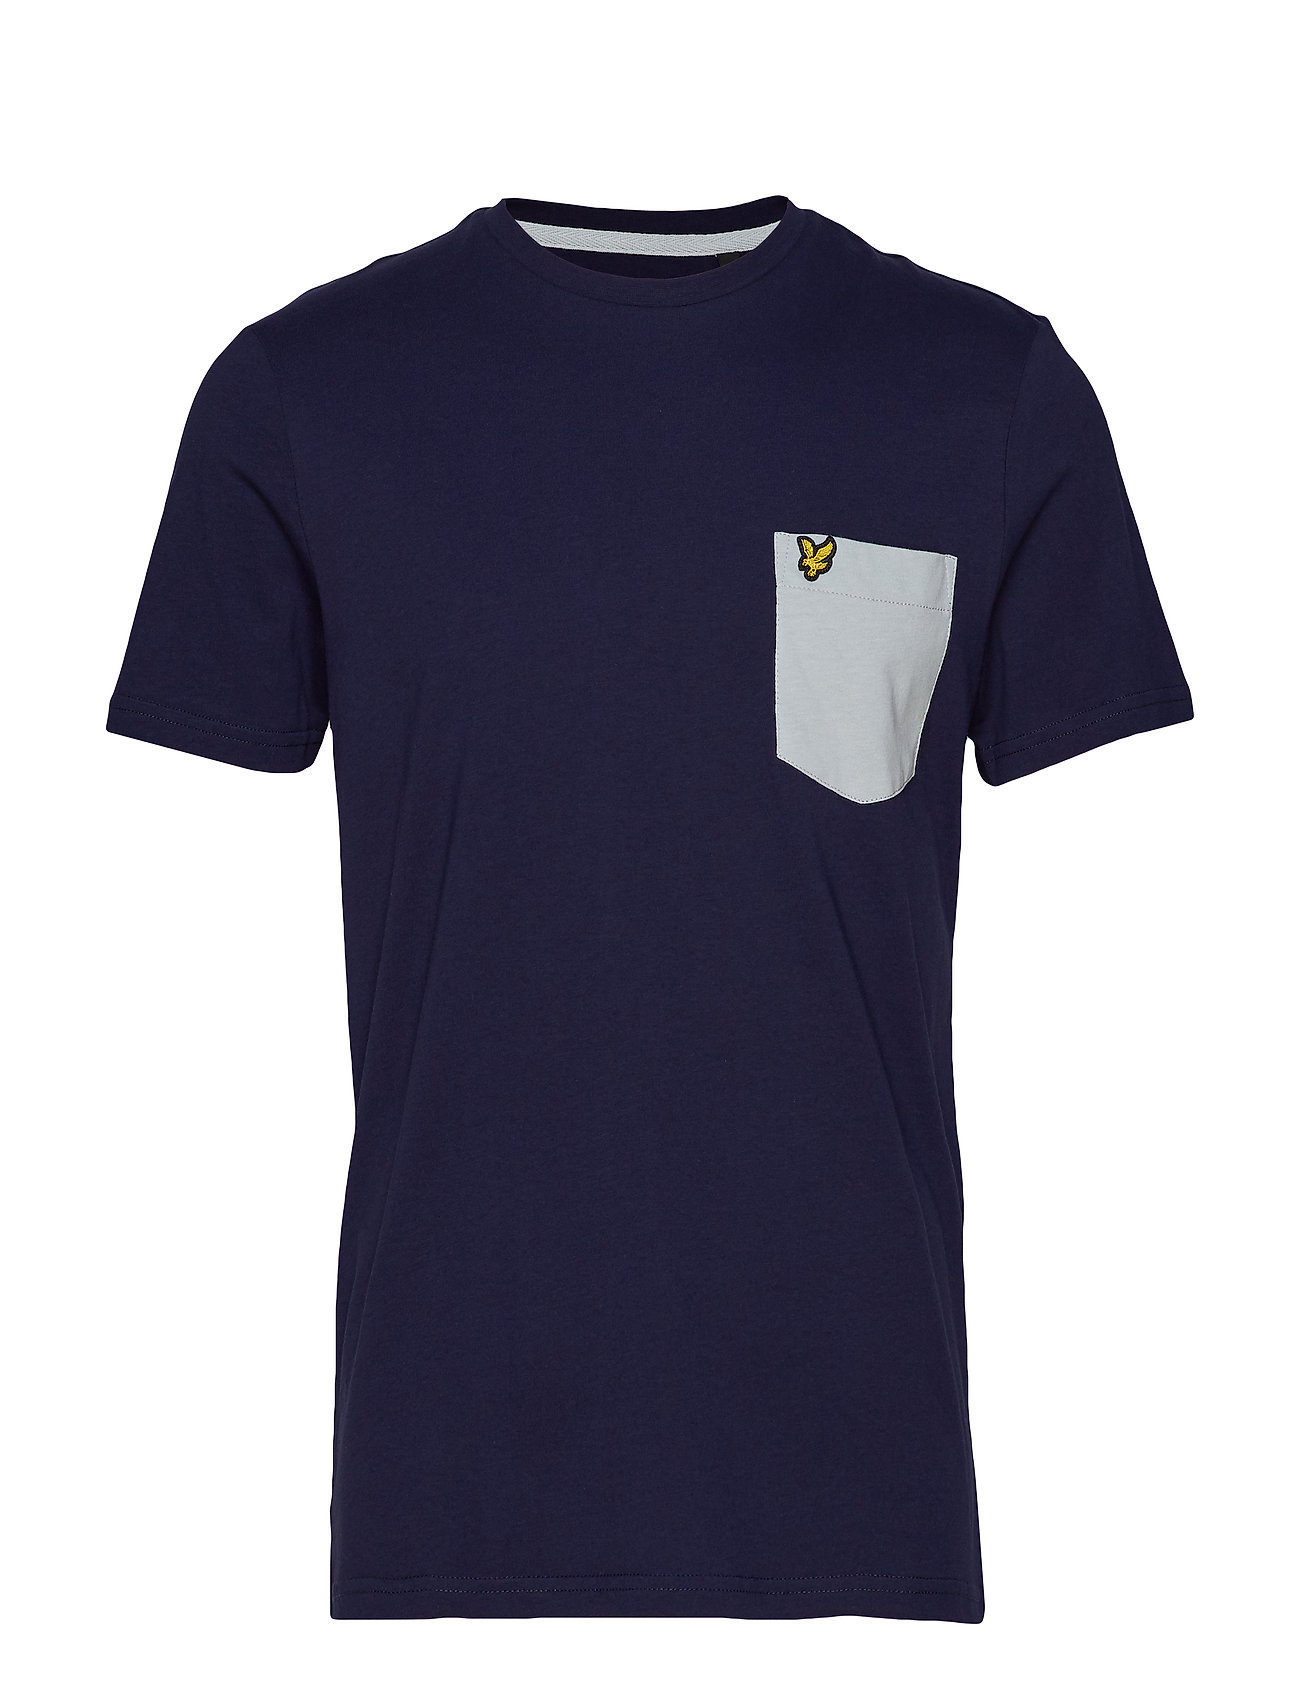 Lyle & Scott Contrast Pocket T Shirt - NAVY/LIGHT SILVER